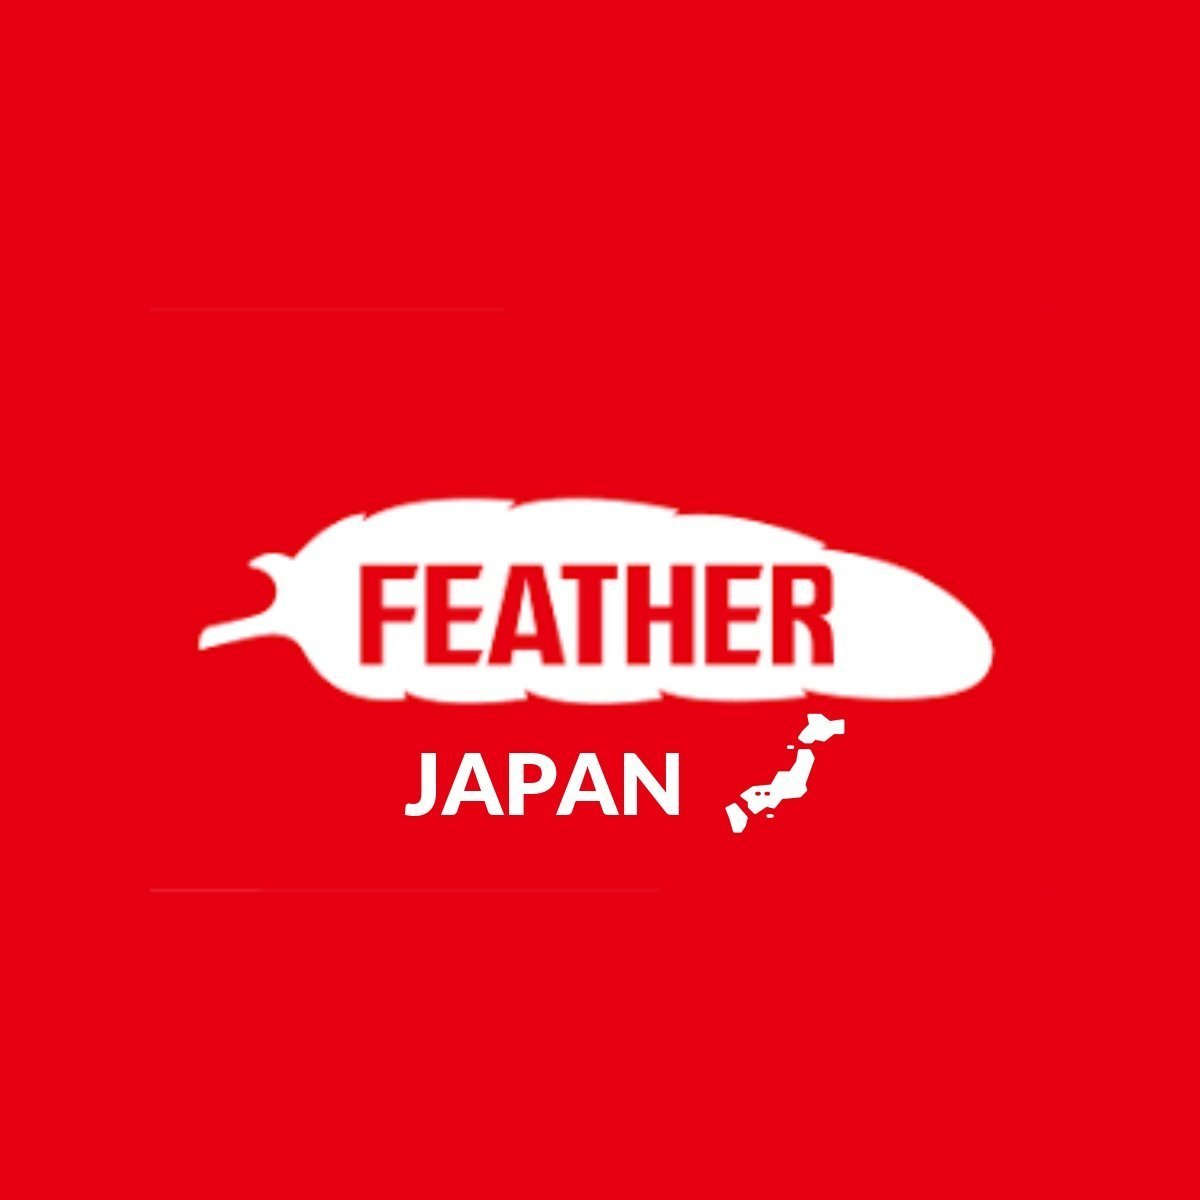 Feather Heu Heuheu Japan